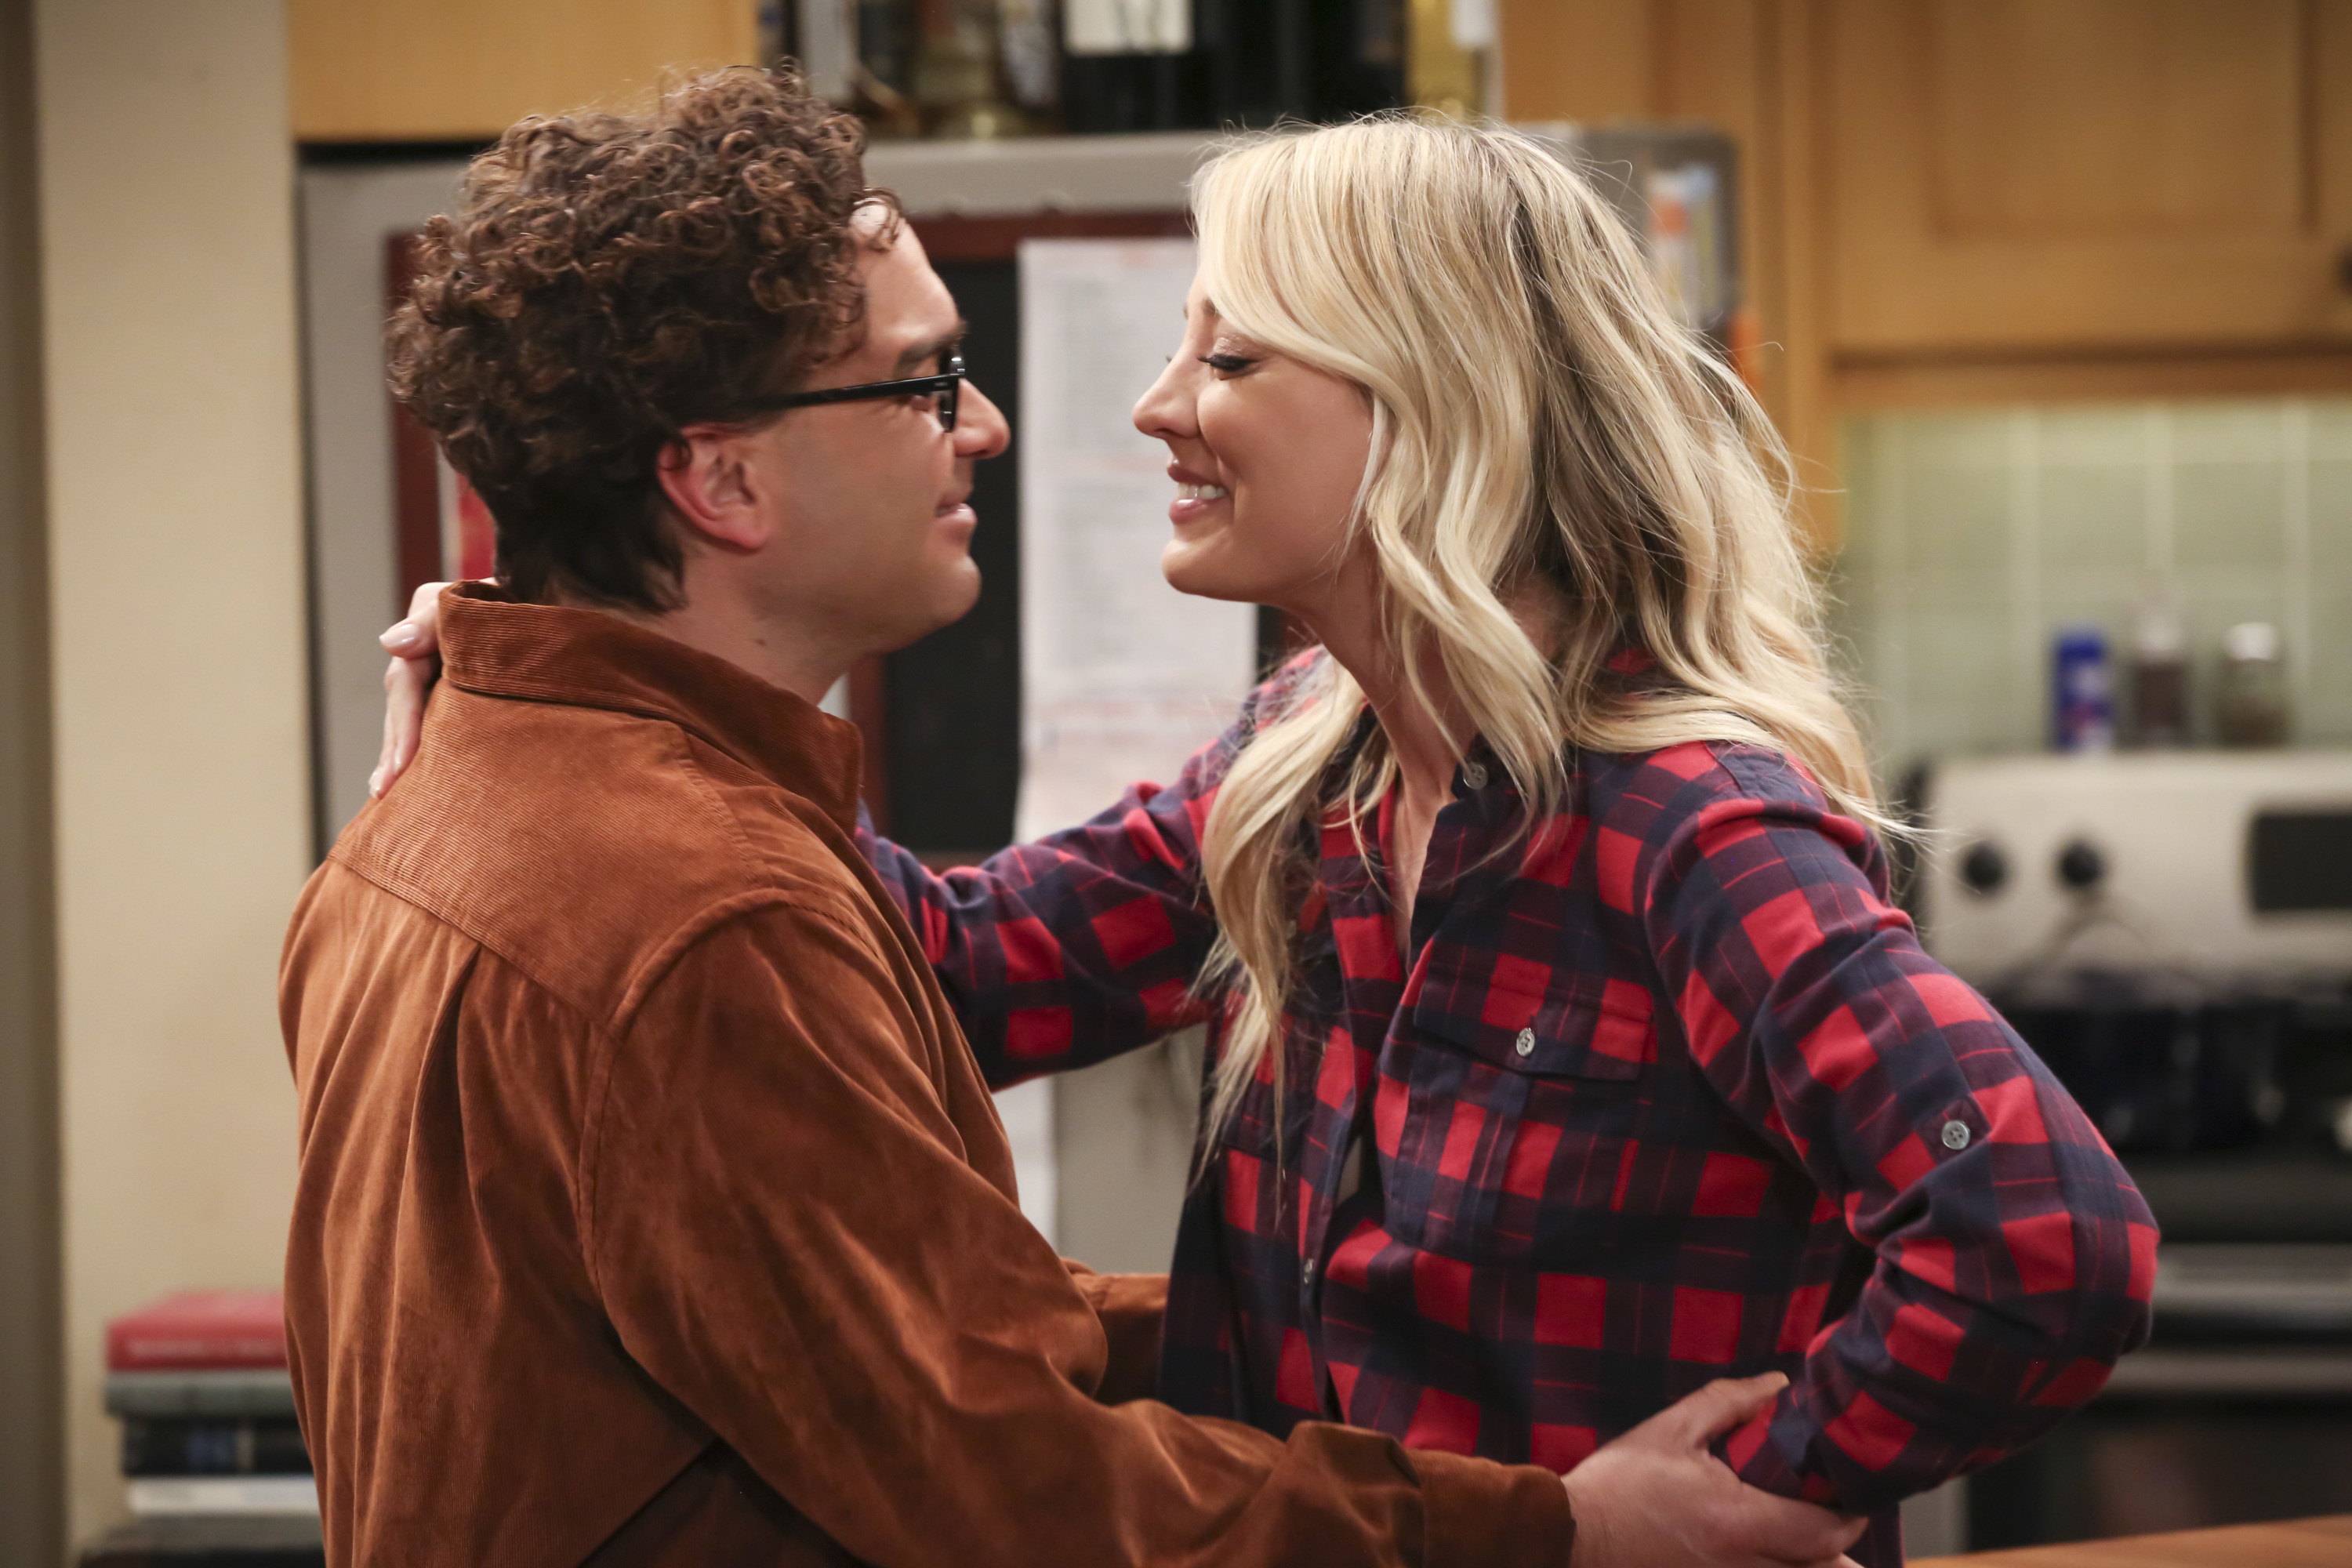 Penny and Leonard look into each other's eyes while embracing